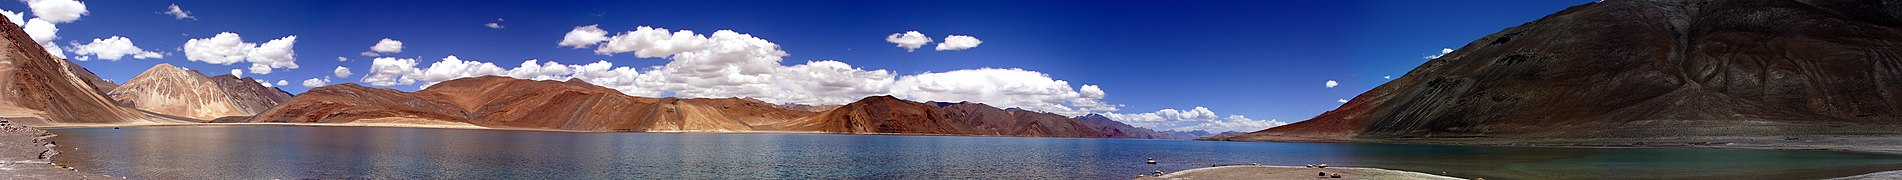 Pangong Tso Summer Panorama View.jpg